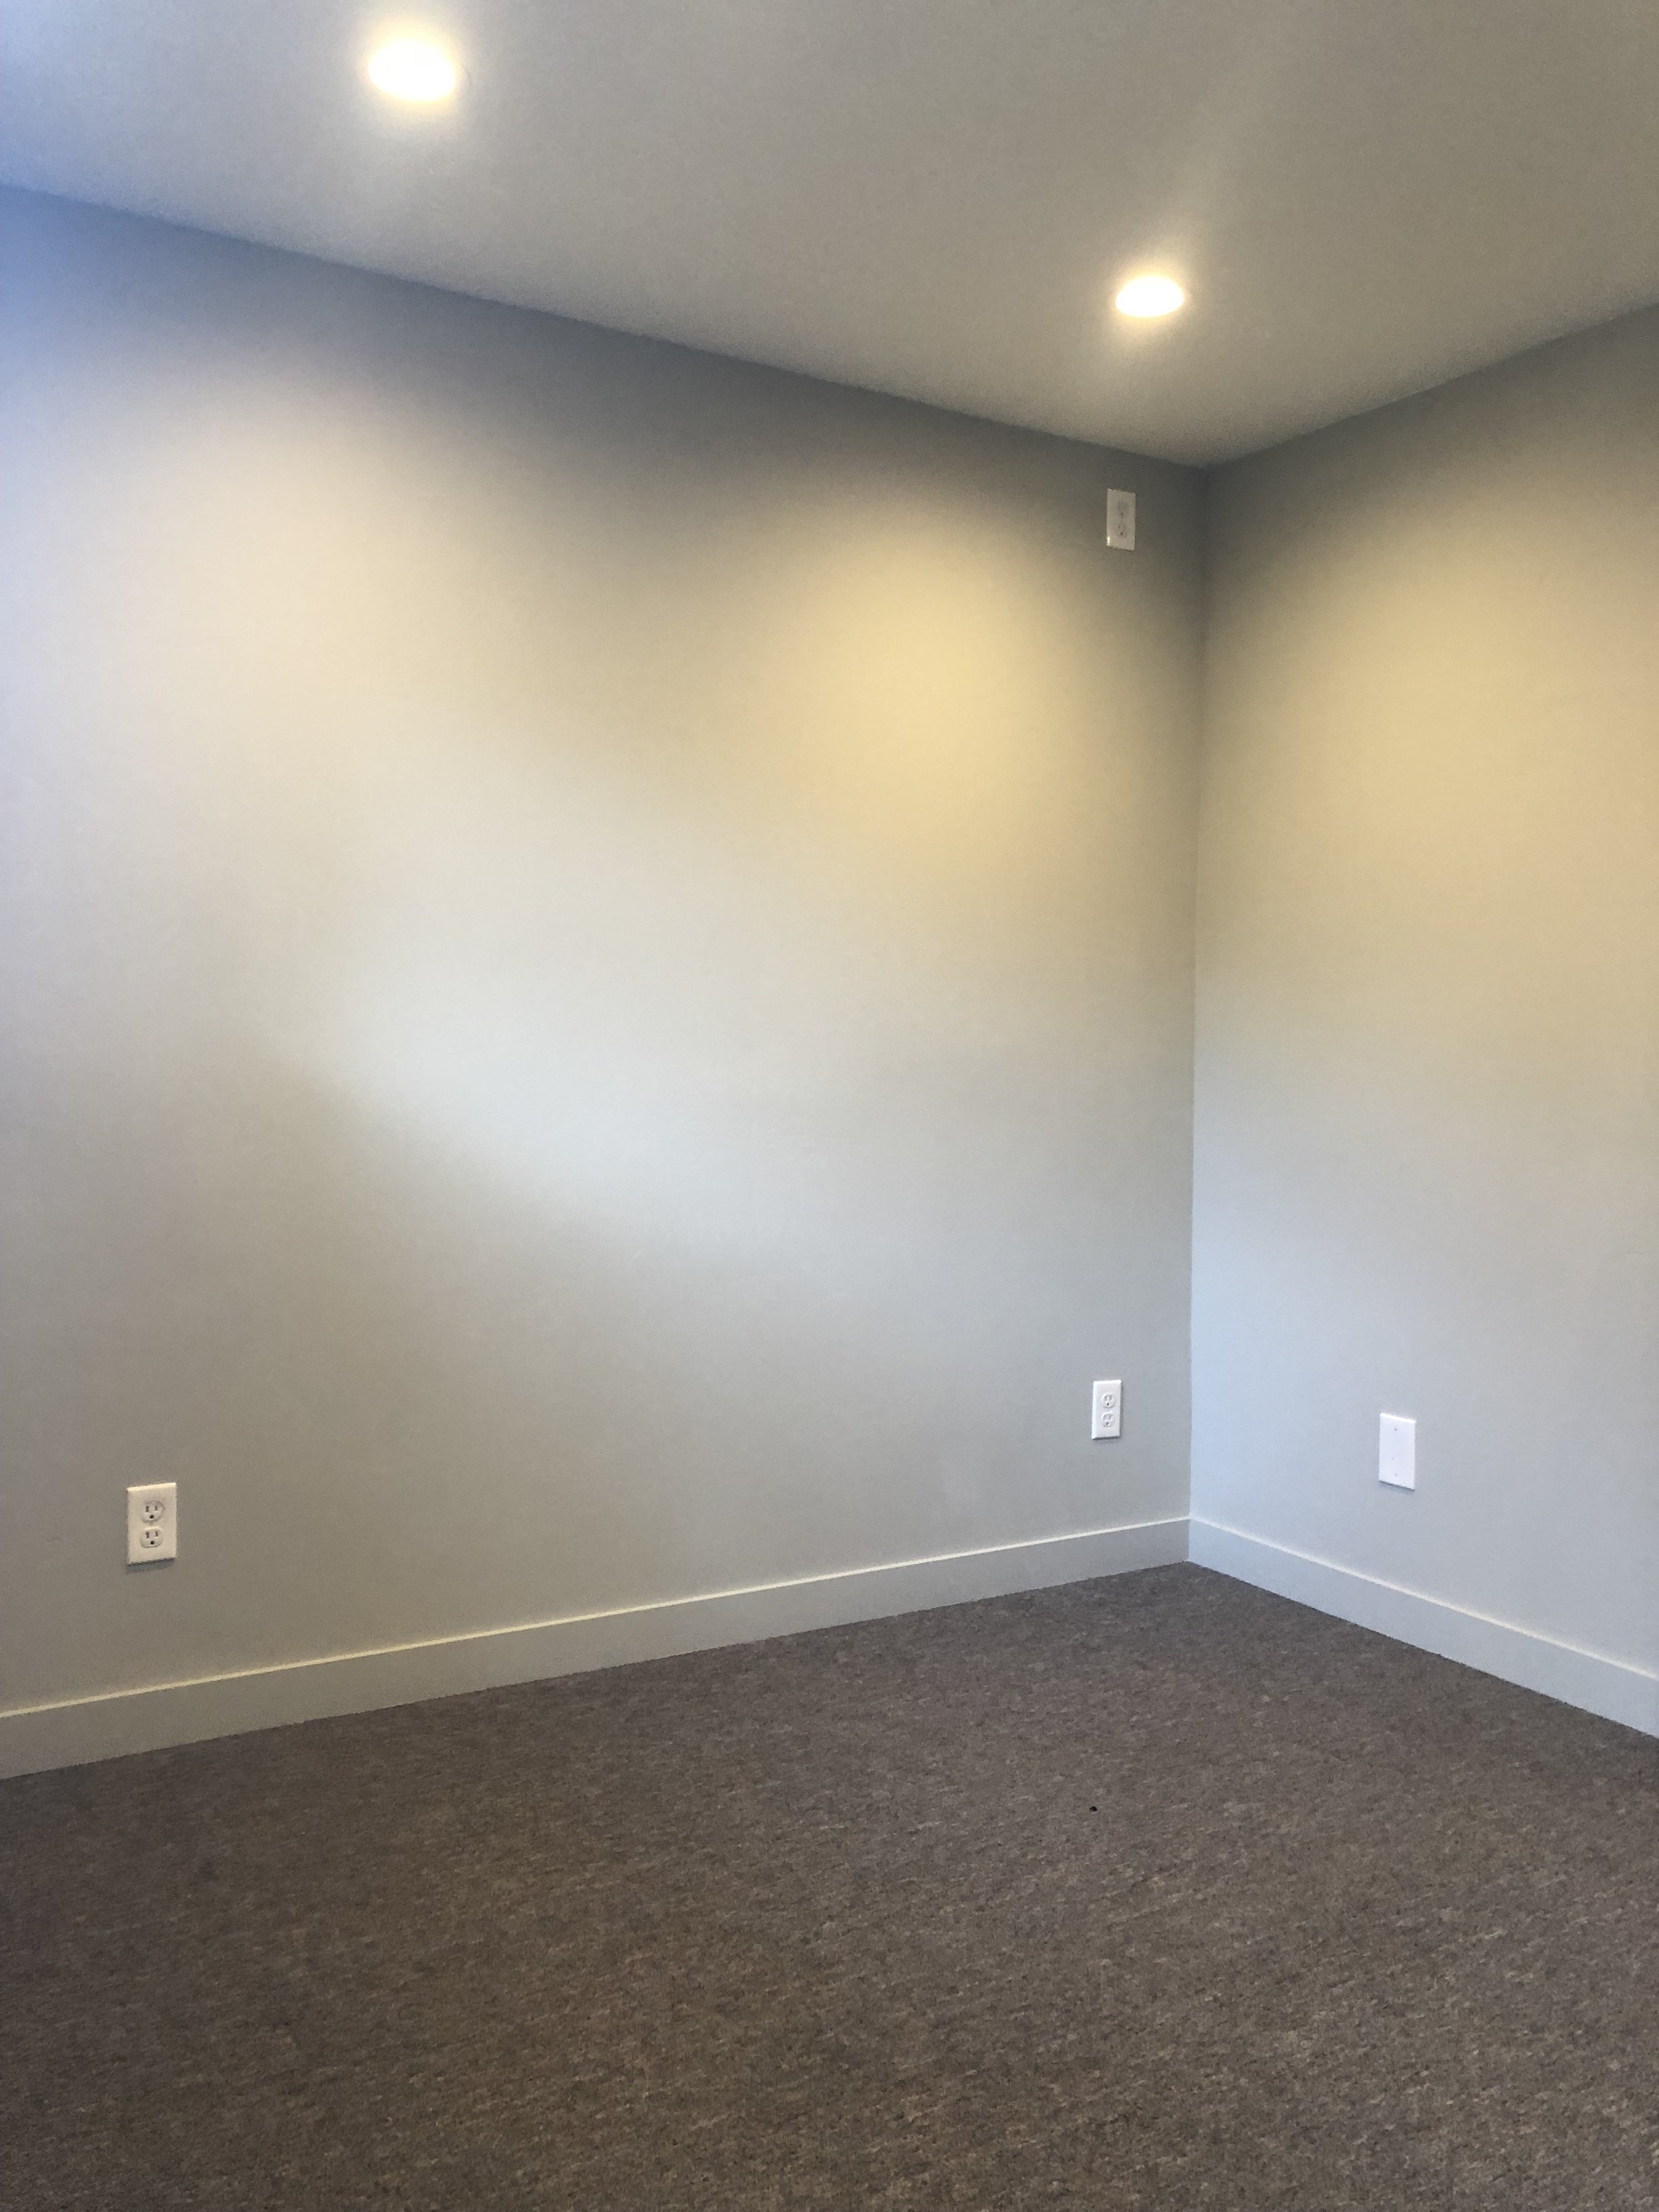 Wanna know how we chose the color for the walls? We had a 5 gallon bucket left over from the Lincoln project. Pretty scary way to design but we were in major efficiency mode. The color is Benjamin Moore  Aloof Gray . For the carpet, we went with super durable industrial carpet from  S&G Carpet .